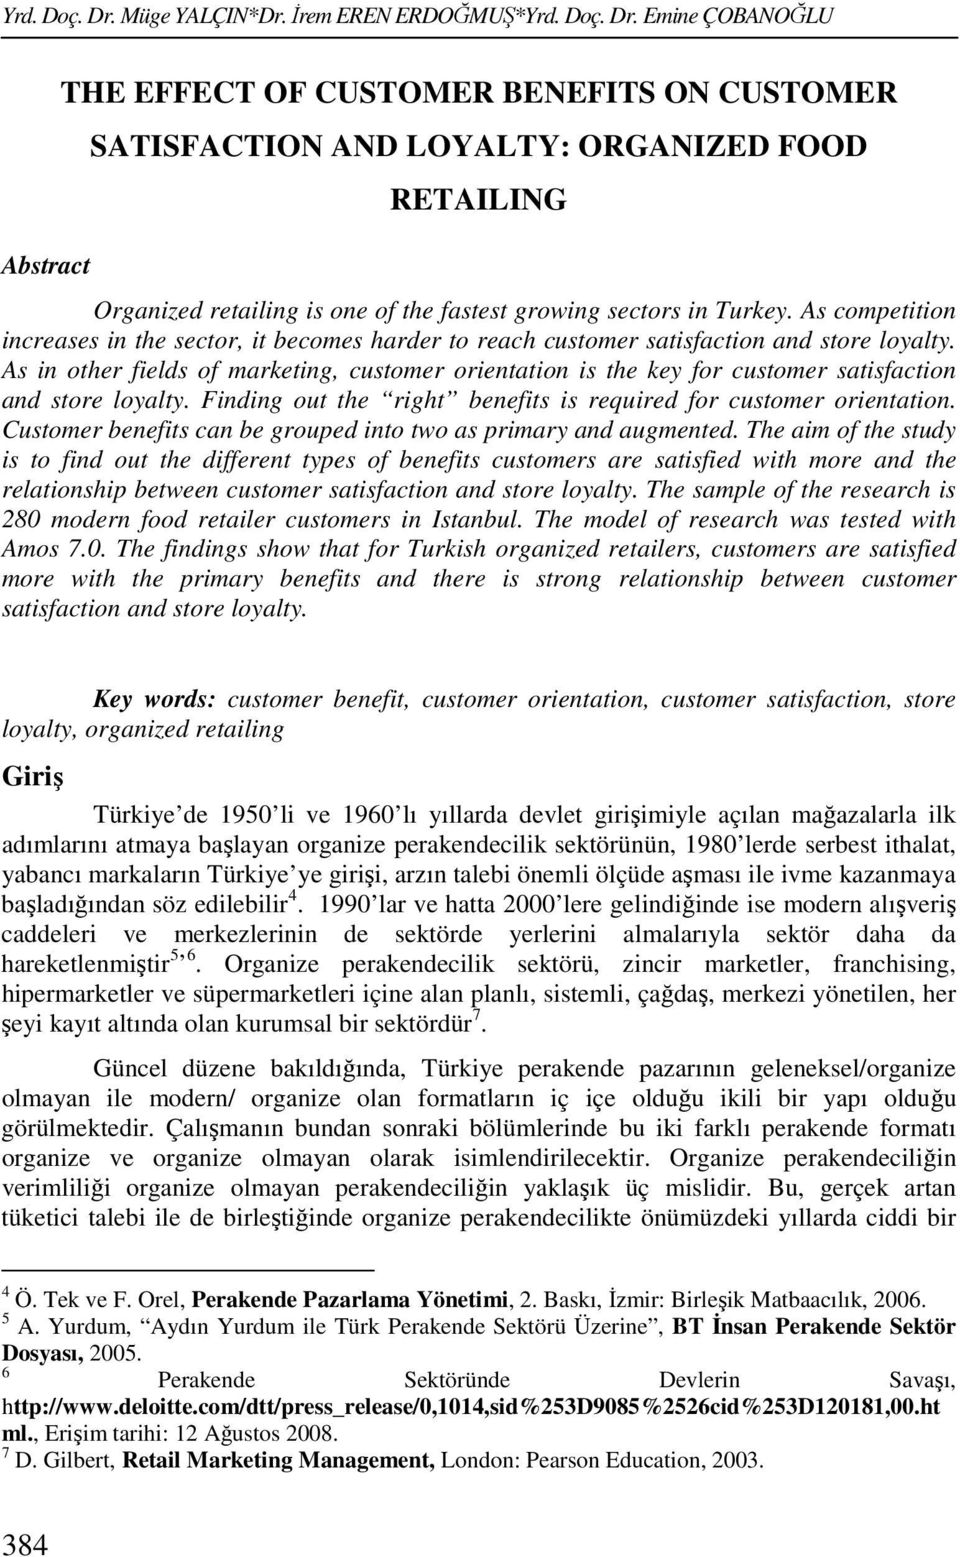 İrem EREN ERDOĞMUŞ* Emine ÇOBANOĞLU Abstract THE EFFECT OF CUSTOMER BENEFITS ON CUSTOMER SATISFACTION AND LOYALTY: ORGANIZED FOOD RETAILING Organized retailing is one of the fastest growing sectors